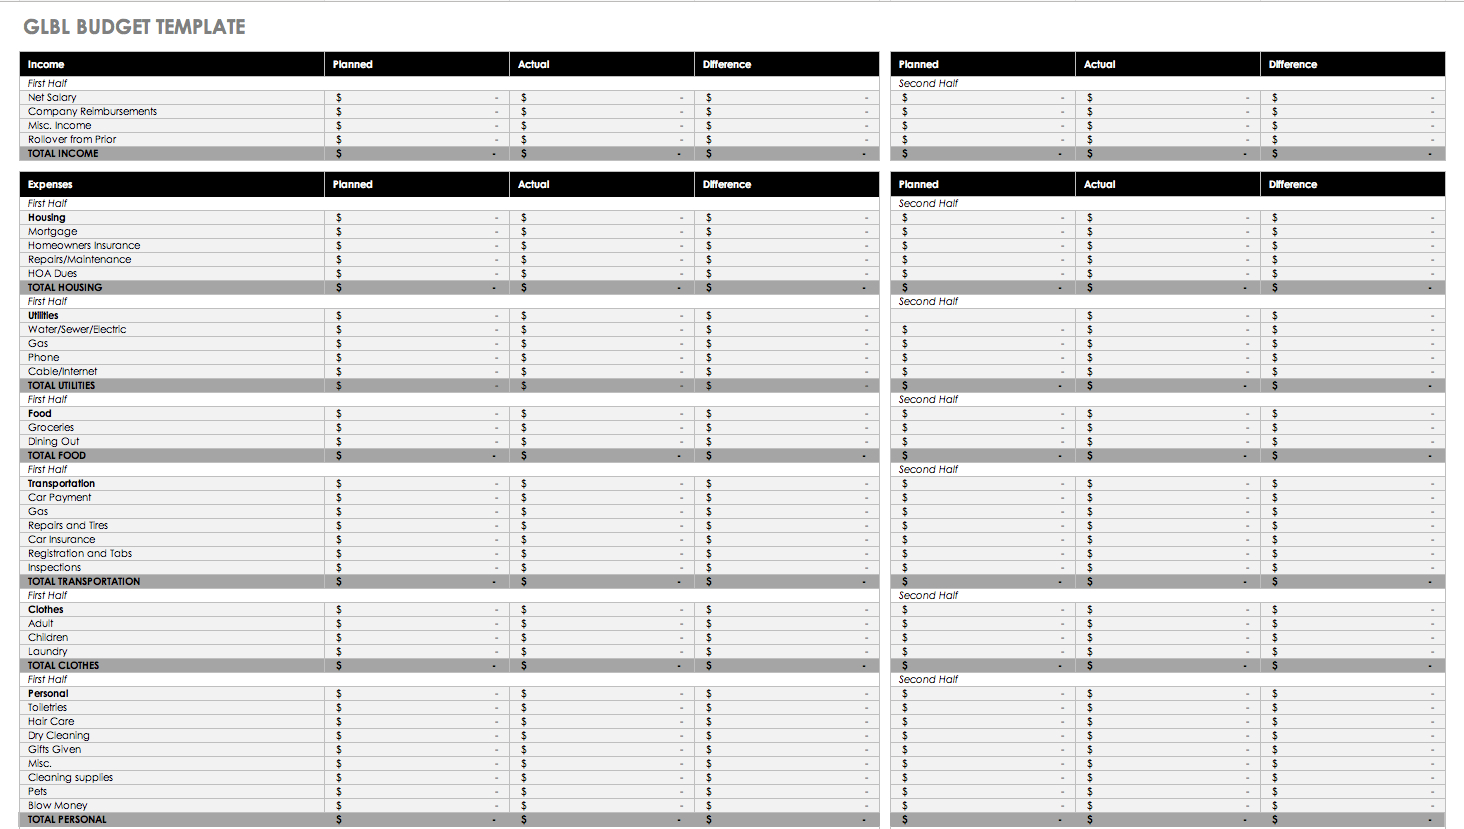 Expenditure Spreadsheet Template With Free Budget Templates In Excel For Any Use